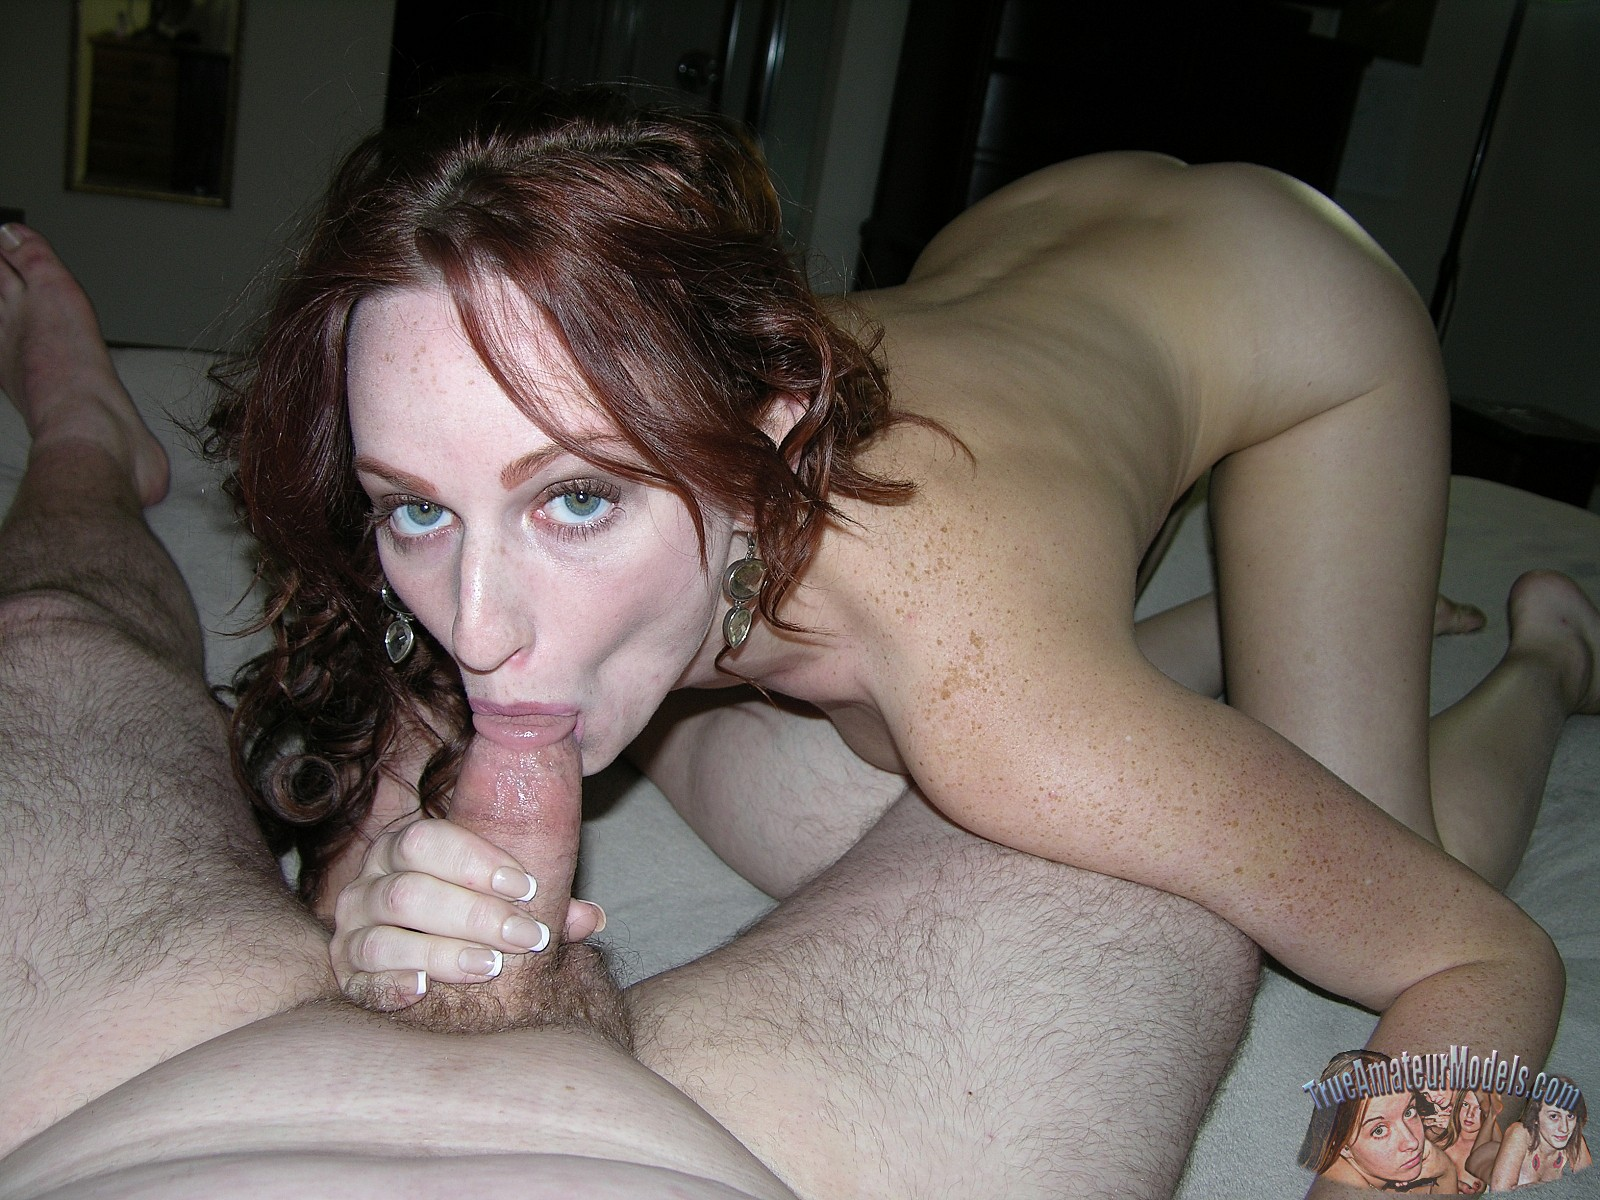 Congratulate, your amateur blowjob redhead that